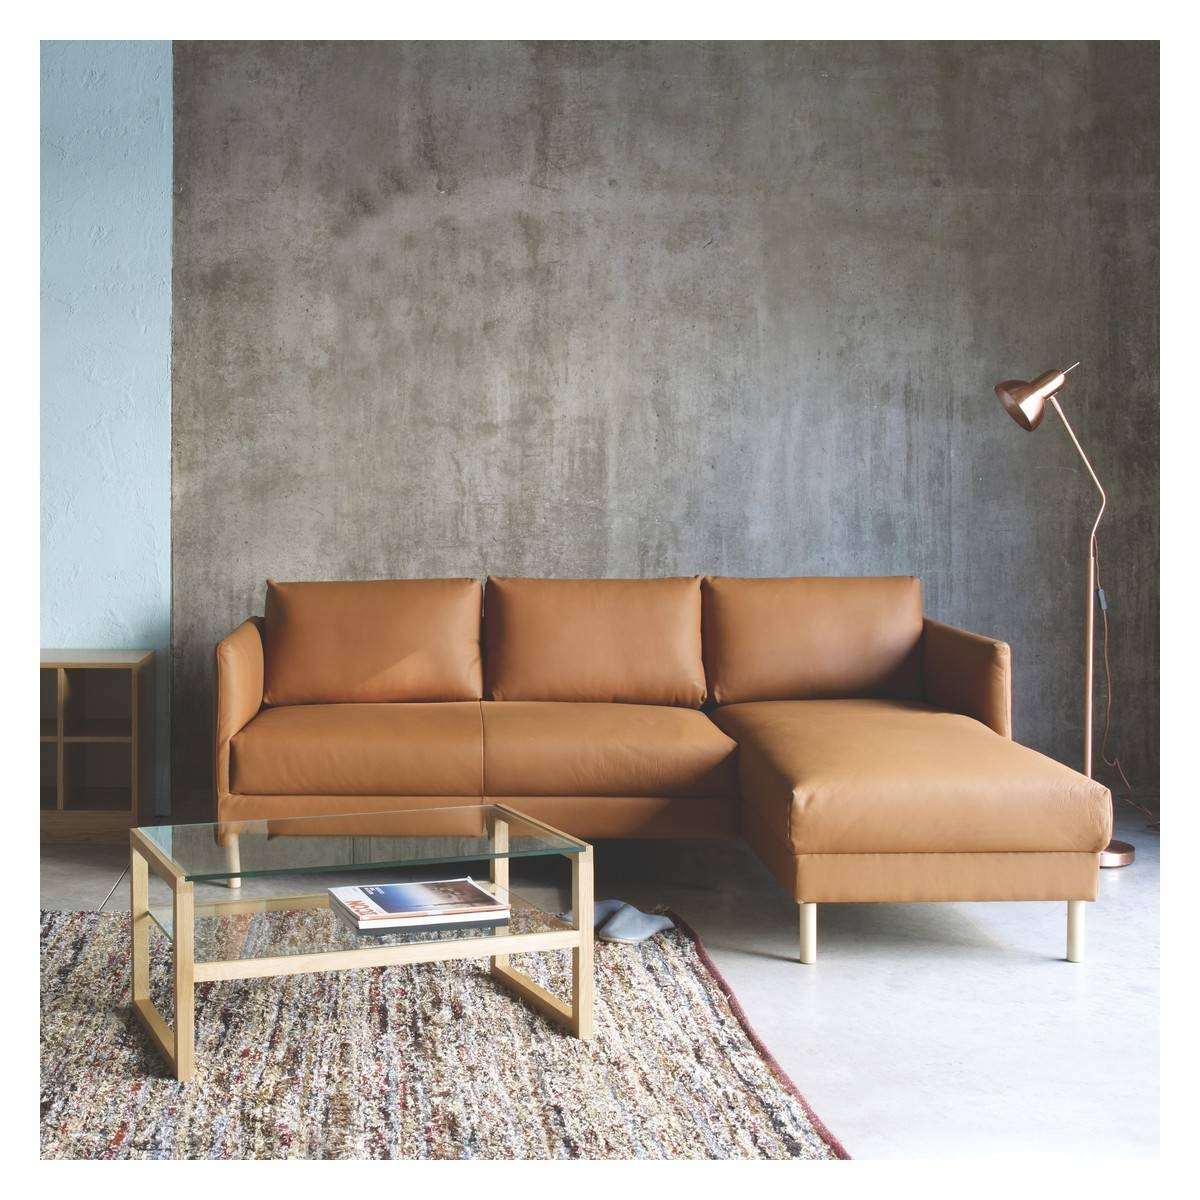 Hyde Cream Leather 2 Seater Sofa, Wooden Legs | Buy Now At Habitat Uk in Wood Legs Sofas (Image 15 of 30)